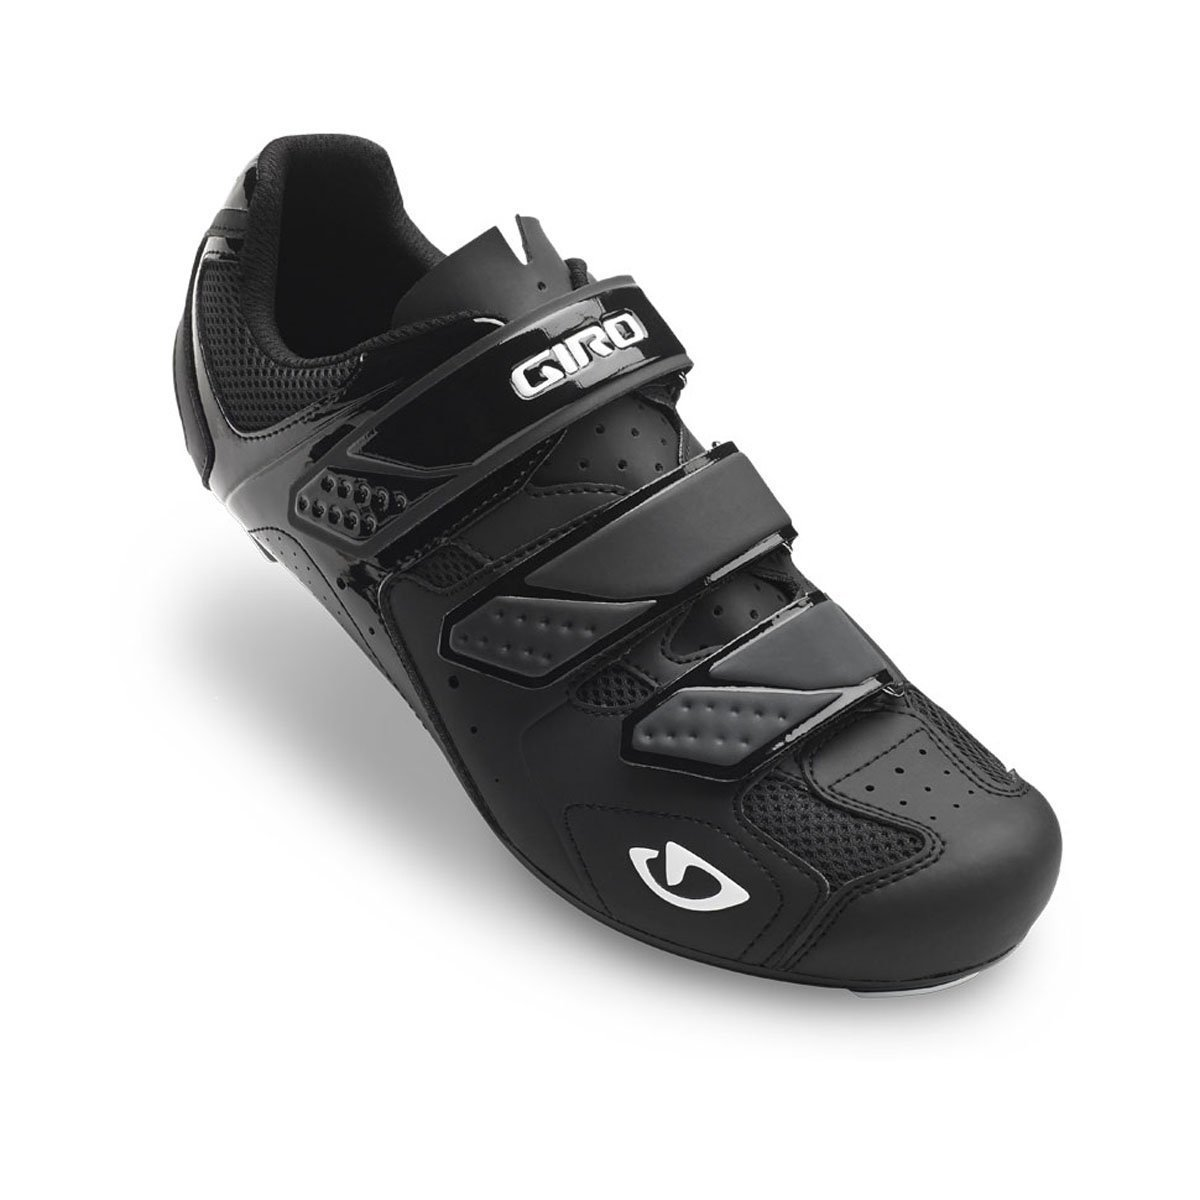 Giro Treble II Road Bike Shoes Matte Black